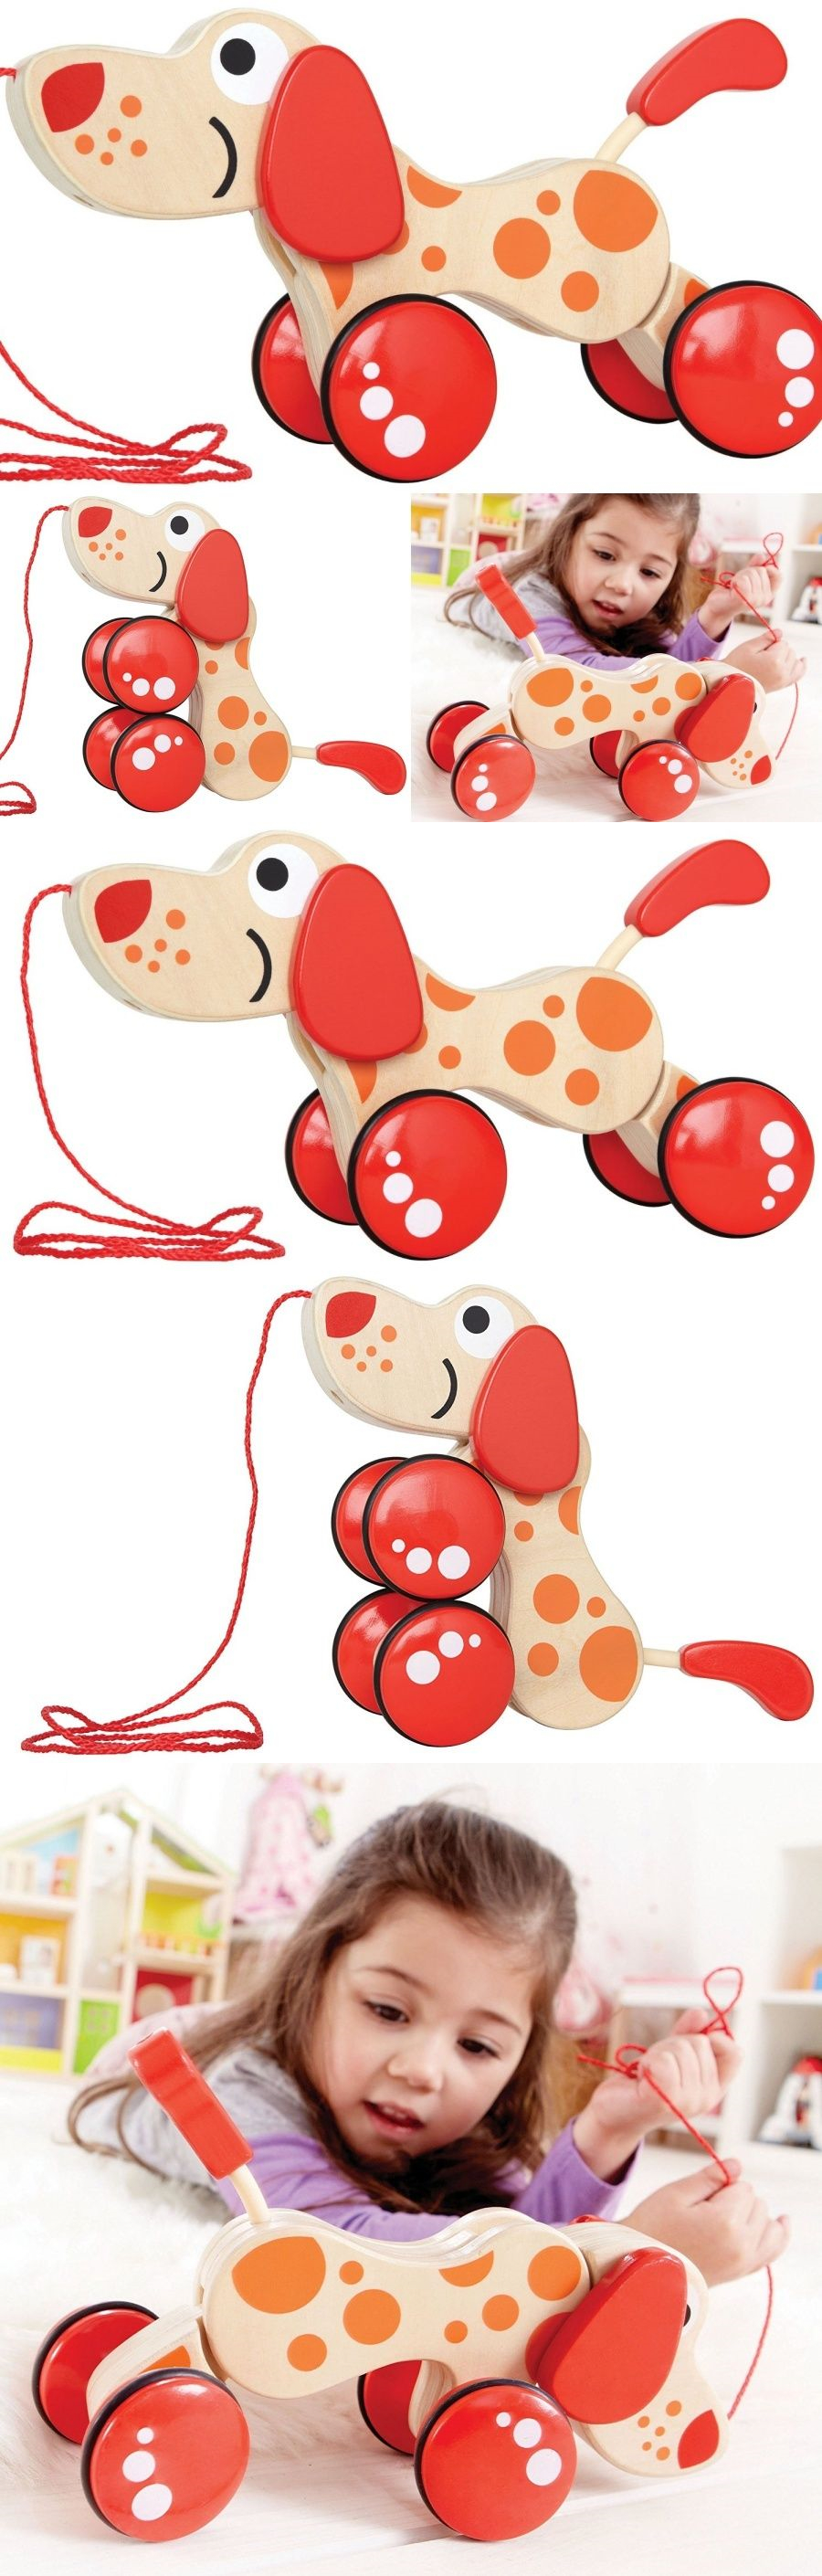 Pull Toys 728 Push Pull Toys Wooden Puppy Craftsmanship Non Toxic